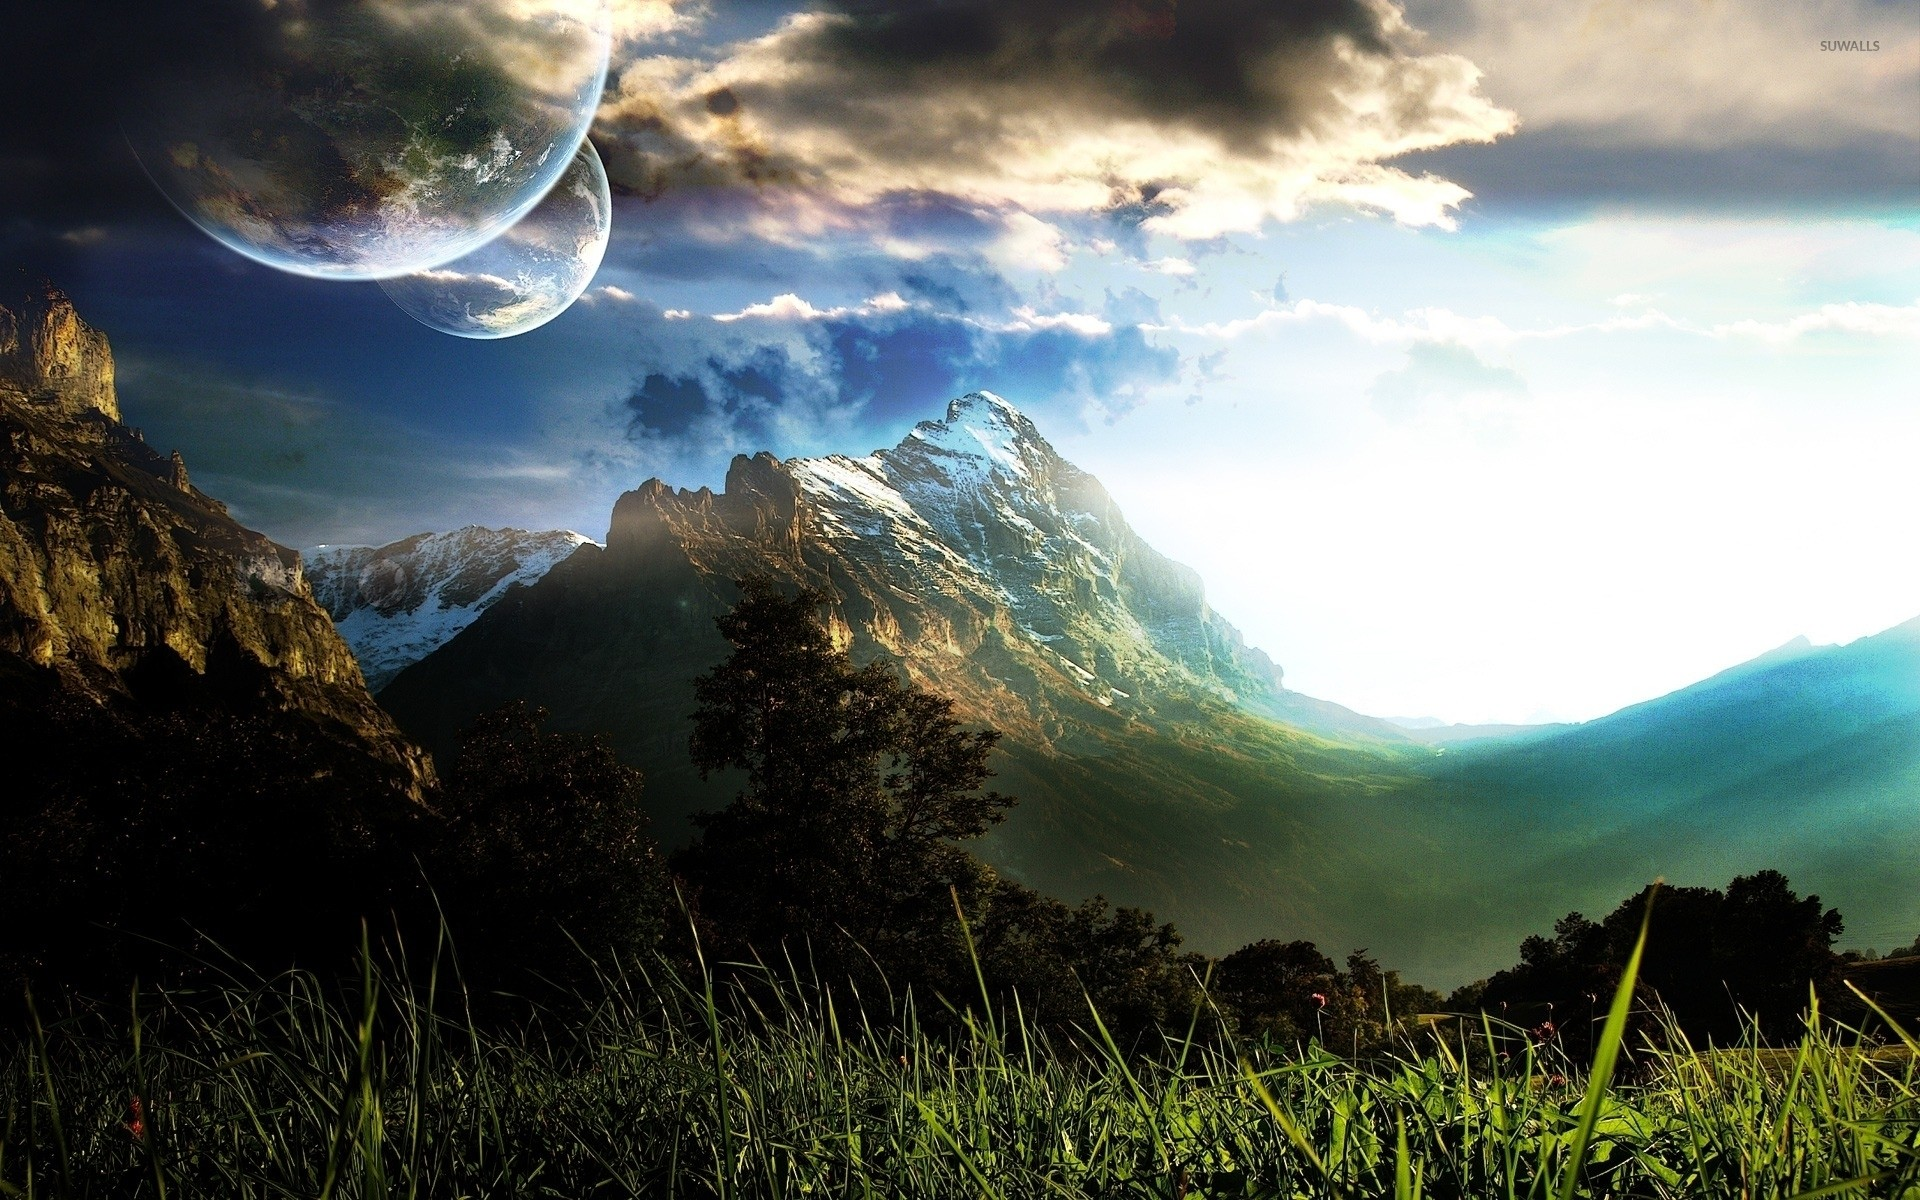 Planets over the mountains wallpaper jpg